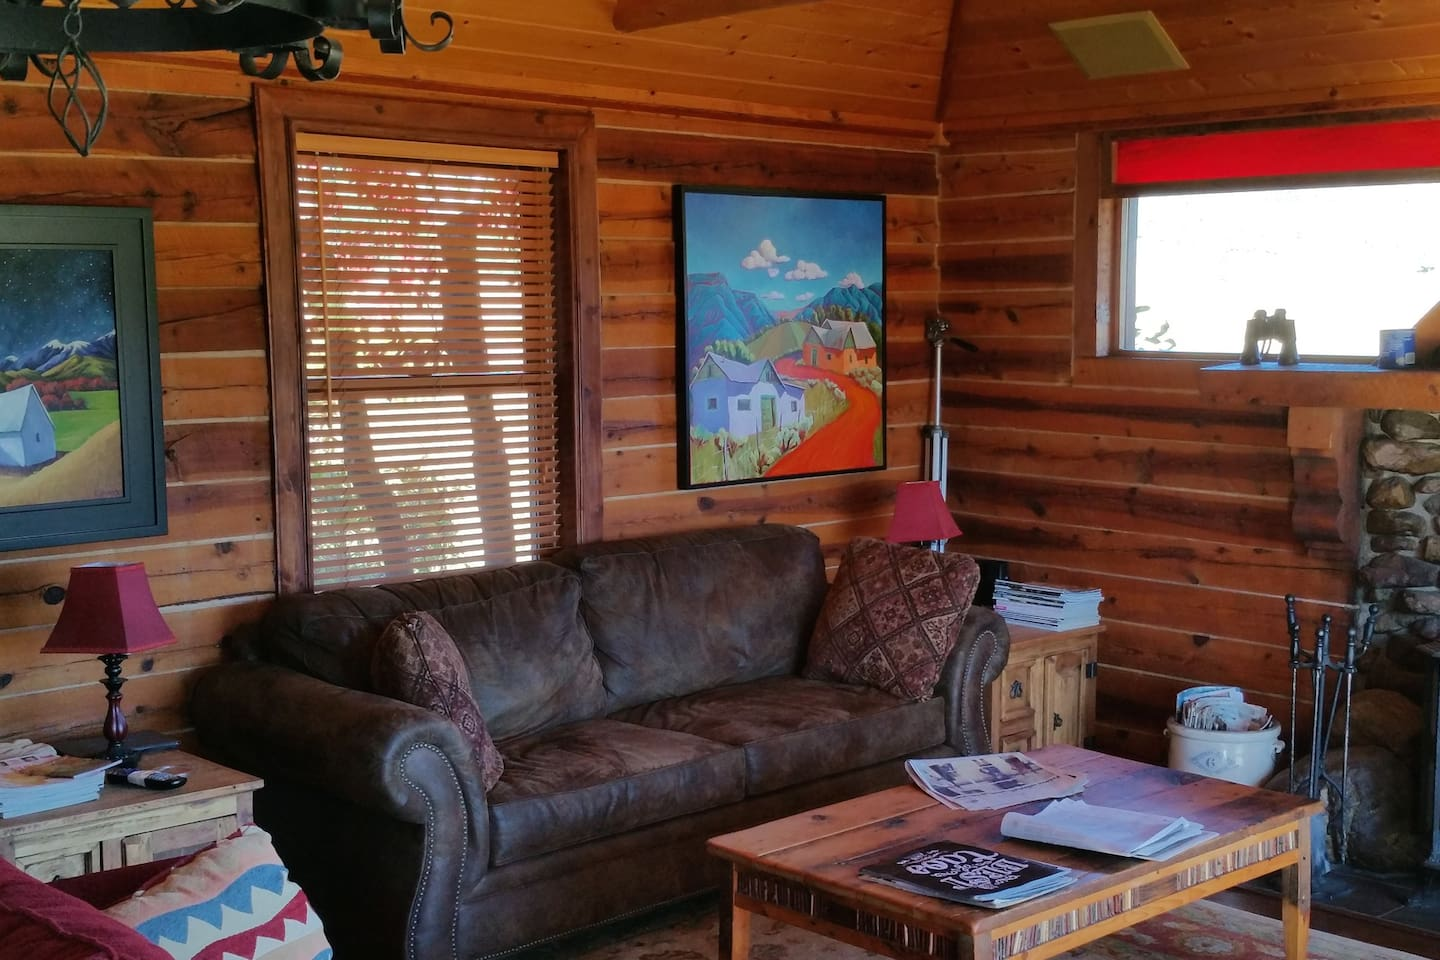 contact cabin parade angel log choice retreat s fire people questions with cabins us luxury of